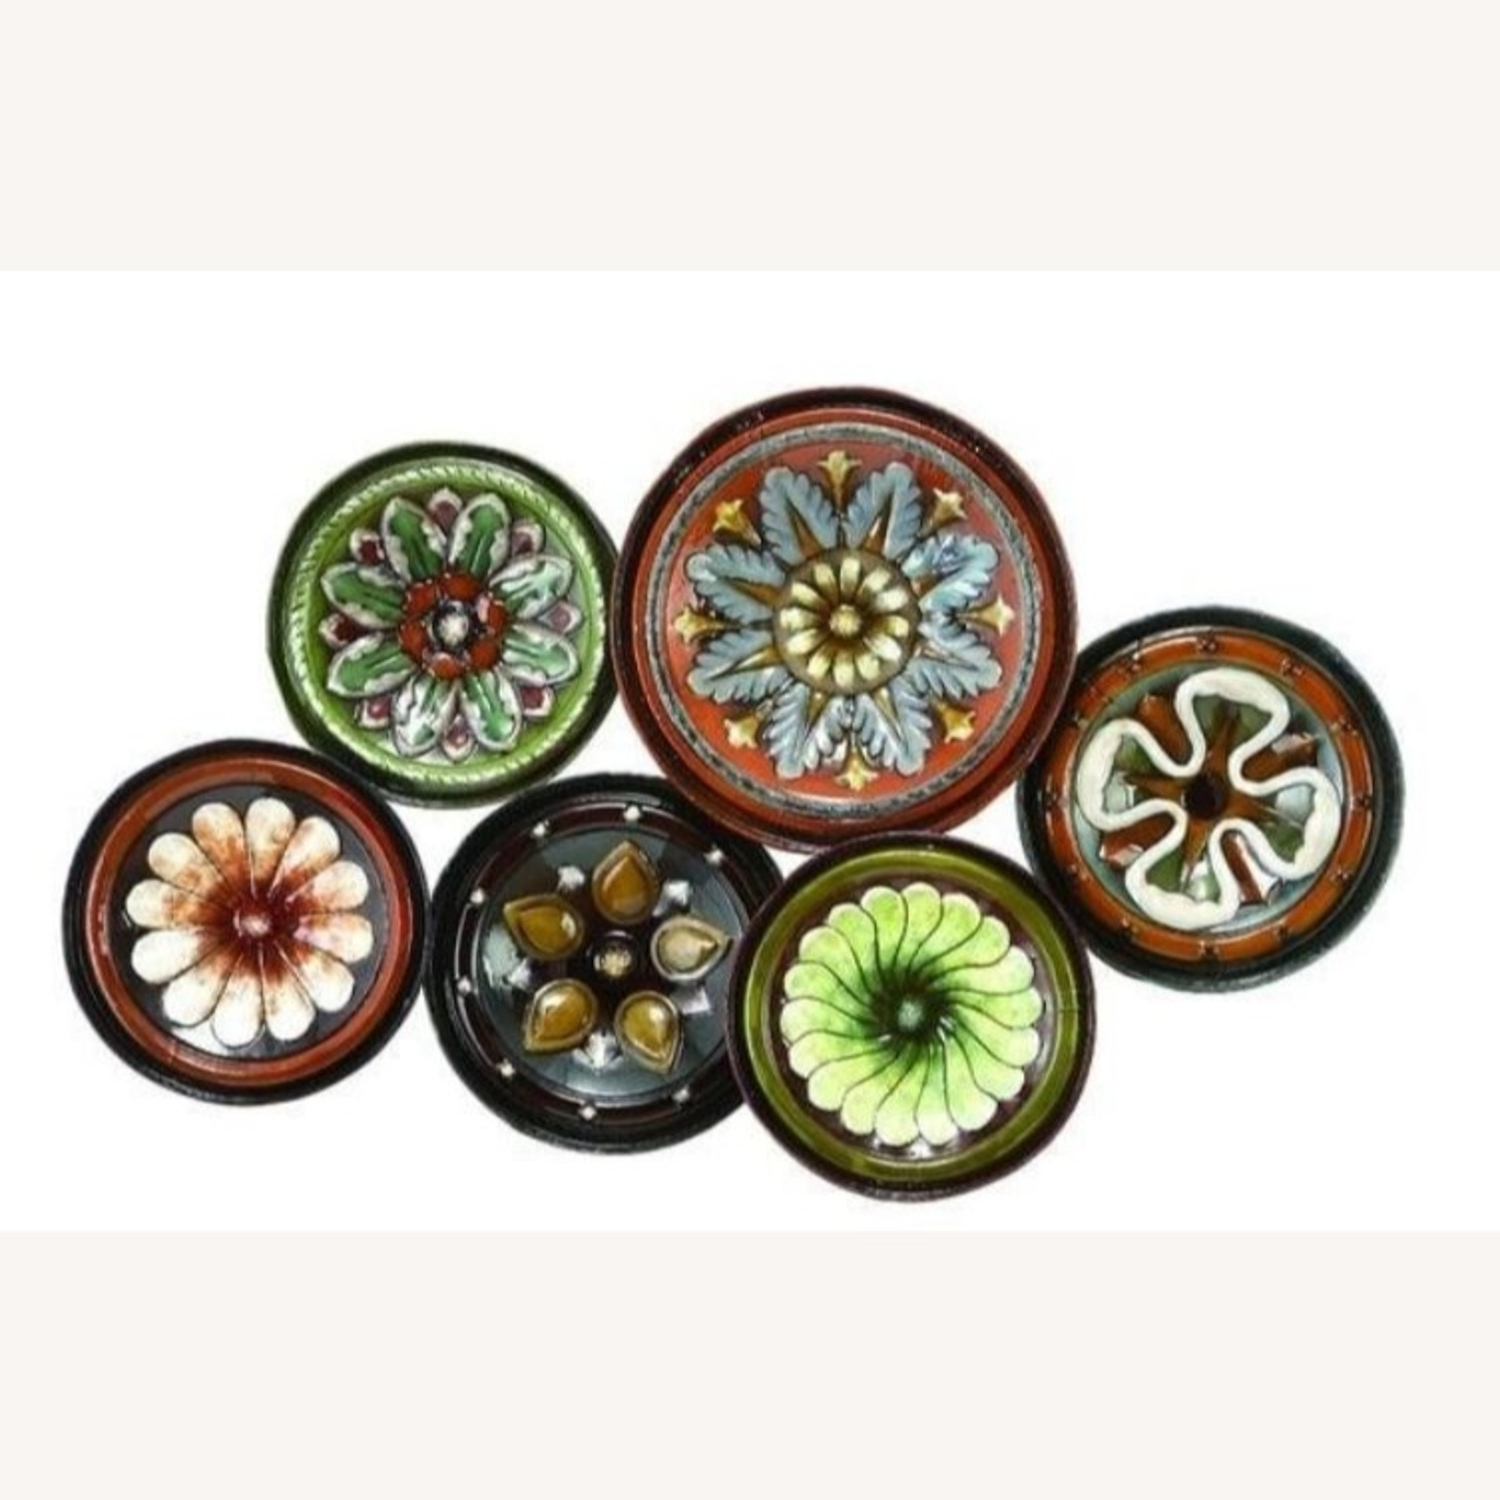 Wolrd Menagerie Multi Color Floral Plates Wall Decor Intended For Best And Newest Floral Plate Wall Décor By World Menagerie (View 11 of 20)